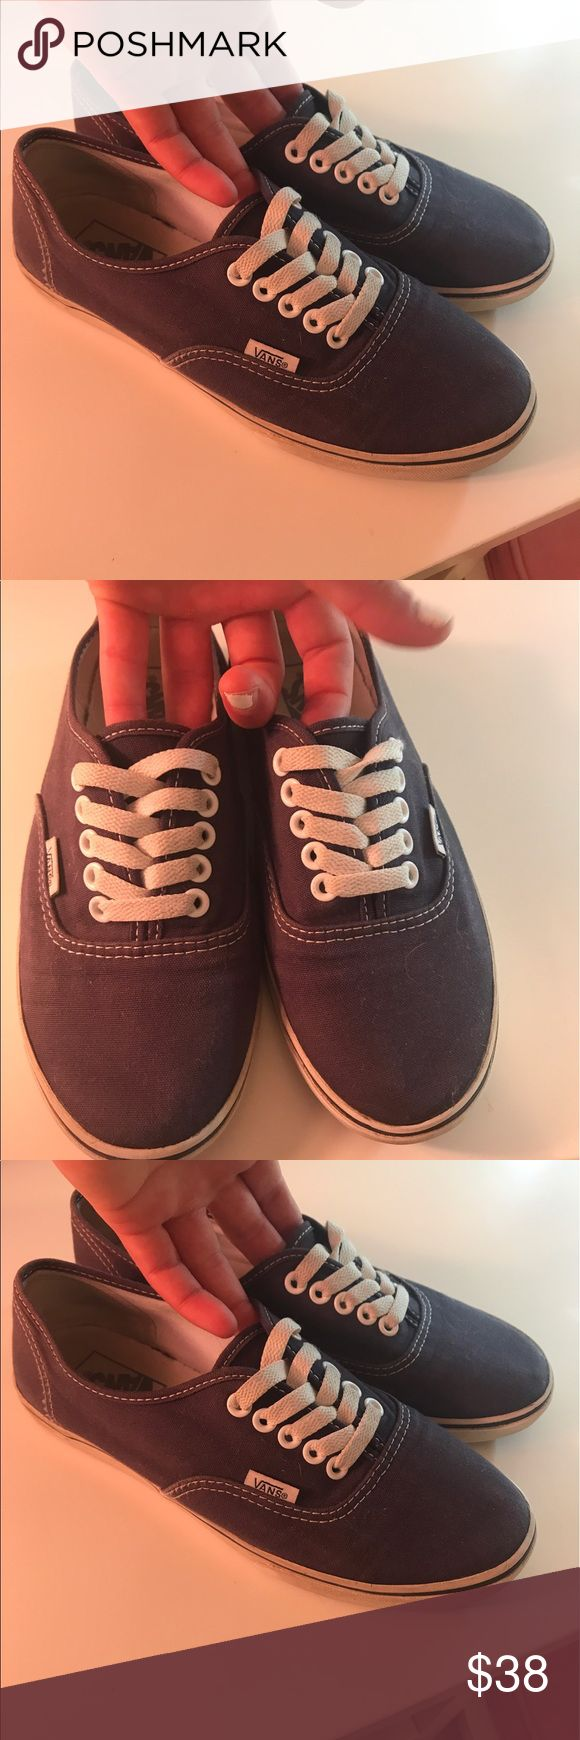 Vans Authentic Navy (perfect condition) Great Condition. Navy Blue. Vans Shoes